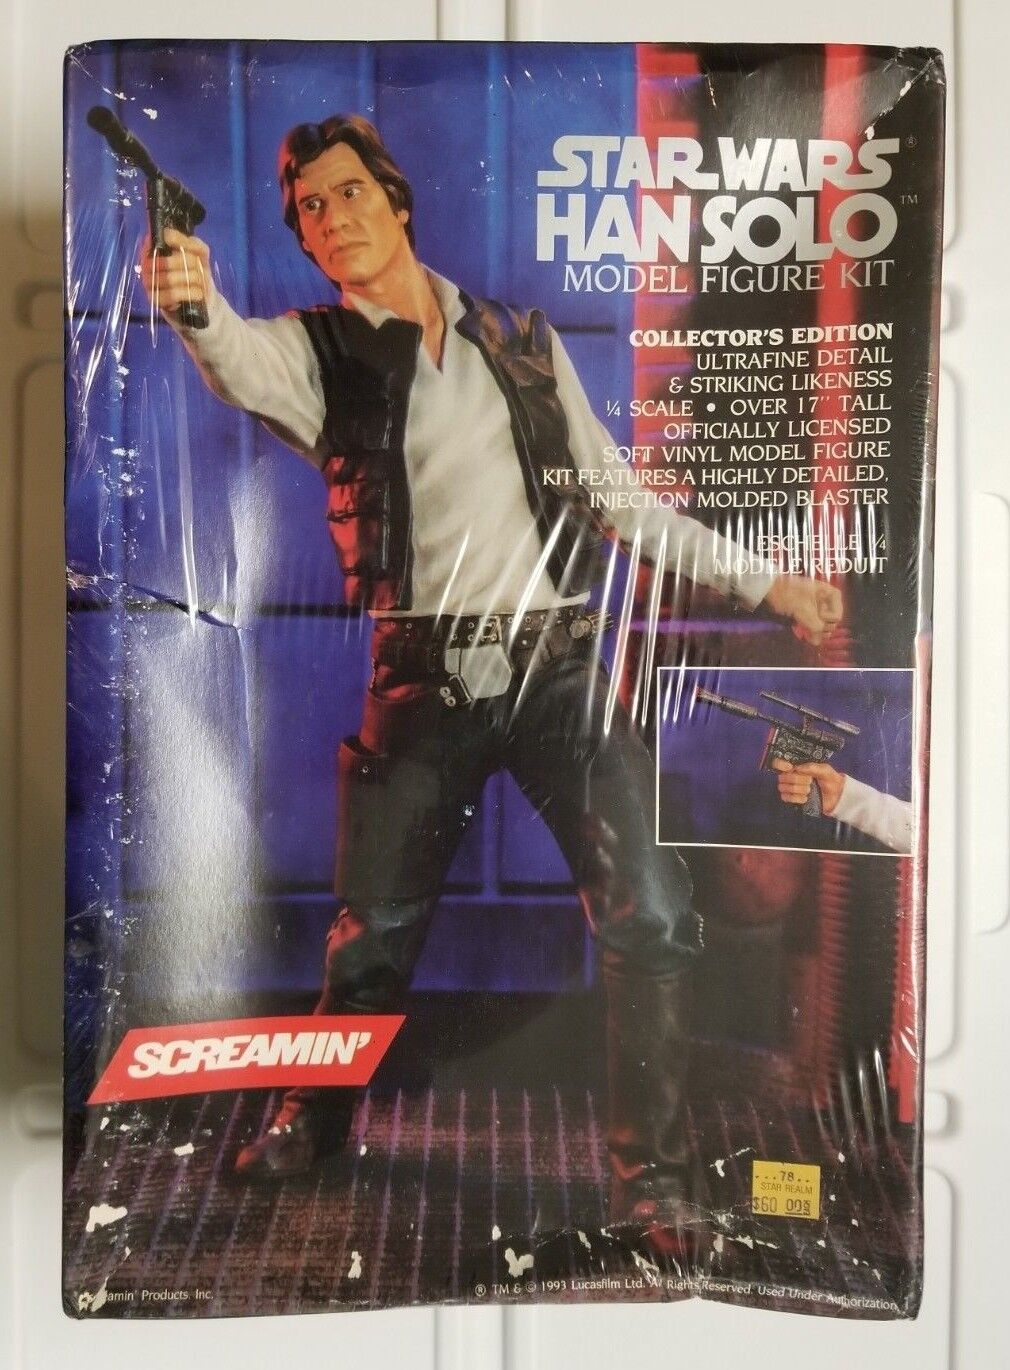 1993 Screamin' STAR WARS HAN SOLO Model Kit Factory Sealed 1 4 scale